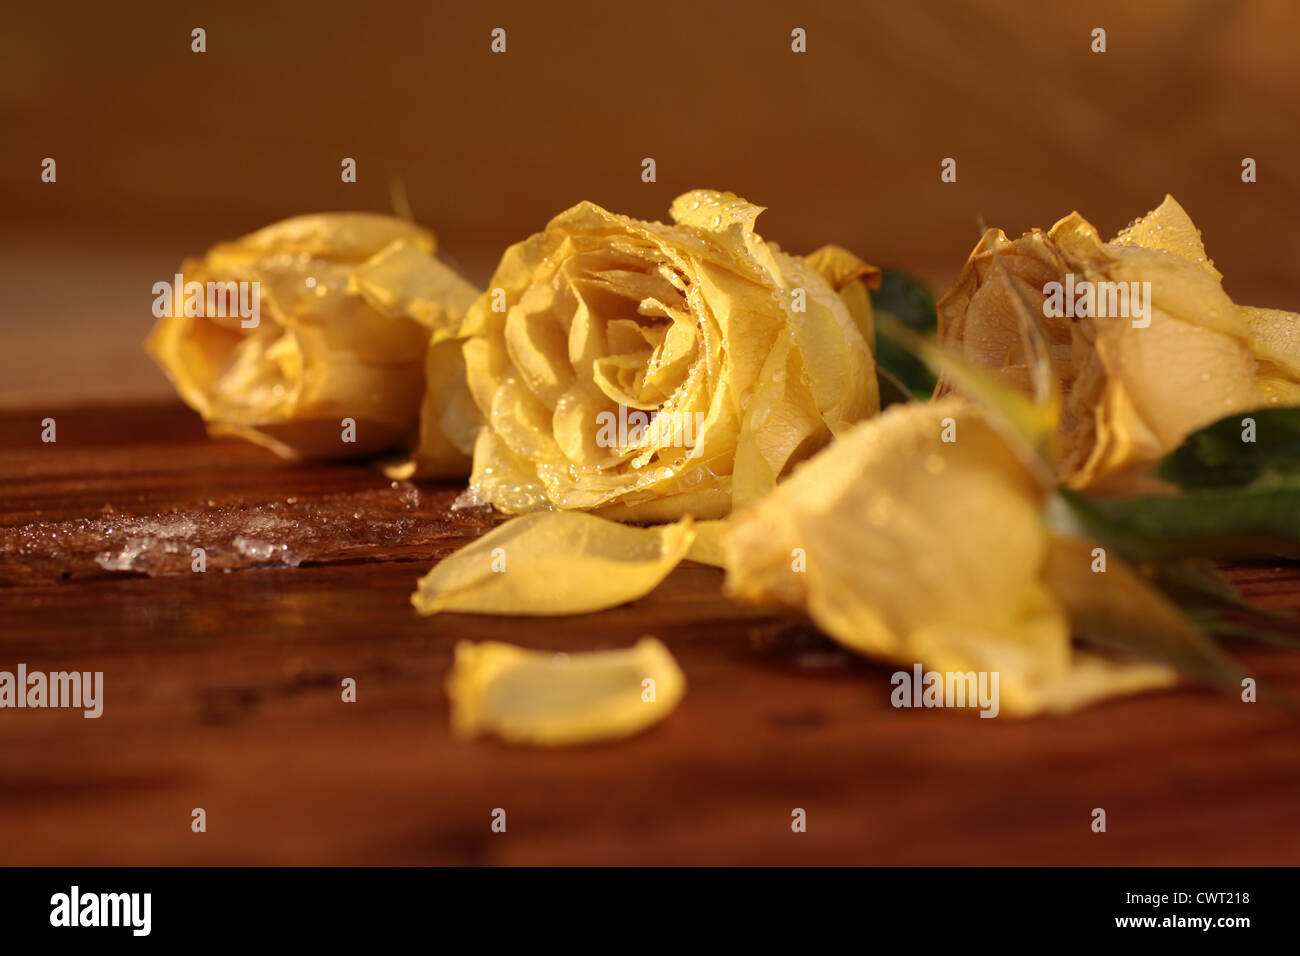 Frozen yellow roses on a rustic wooden table Stock Photo